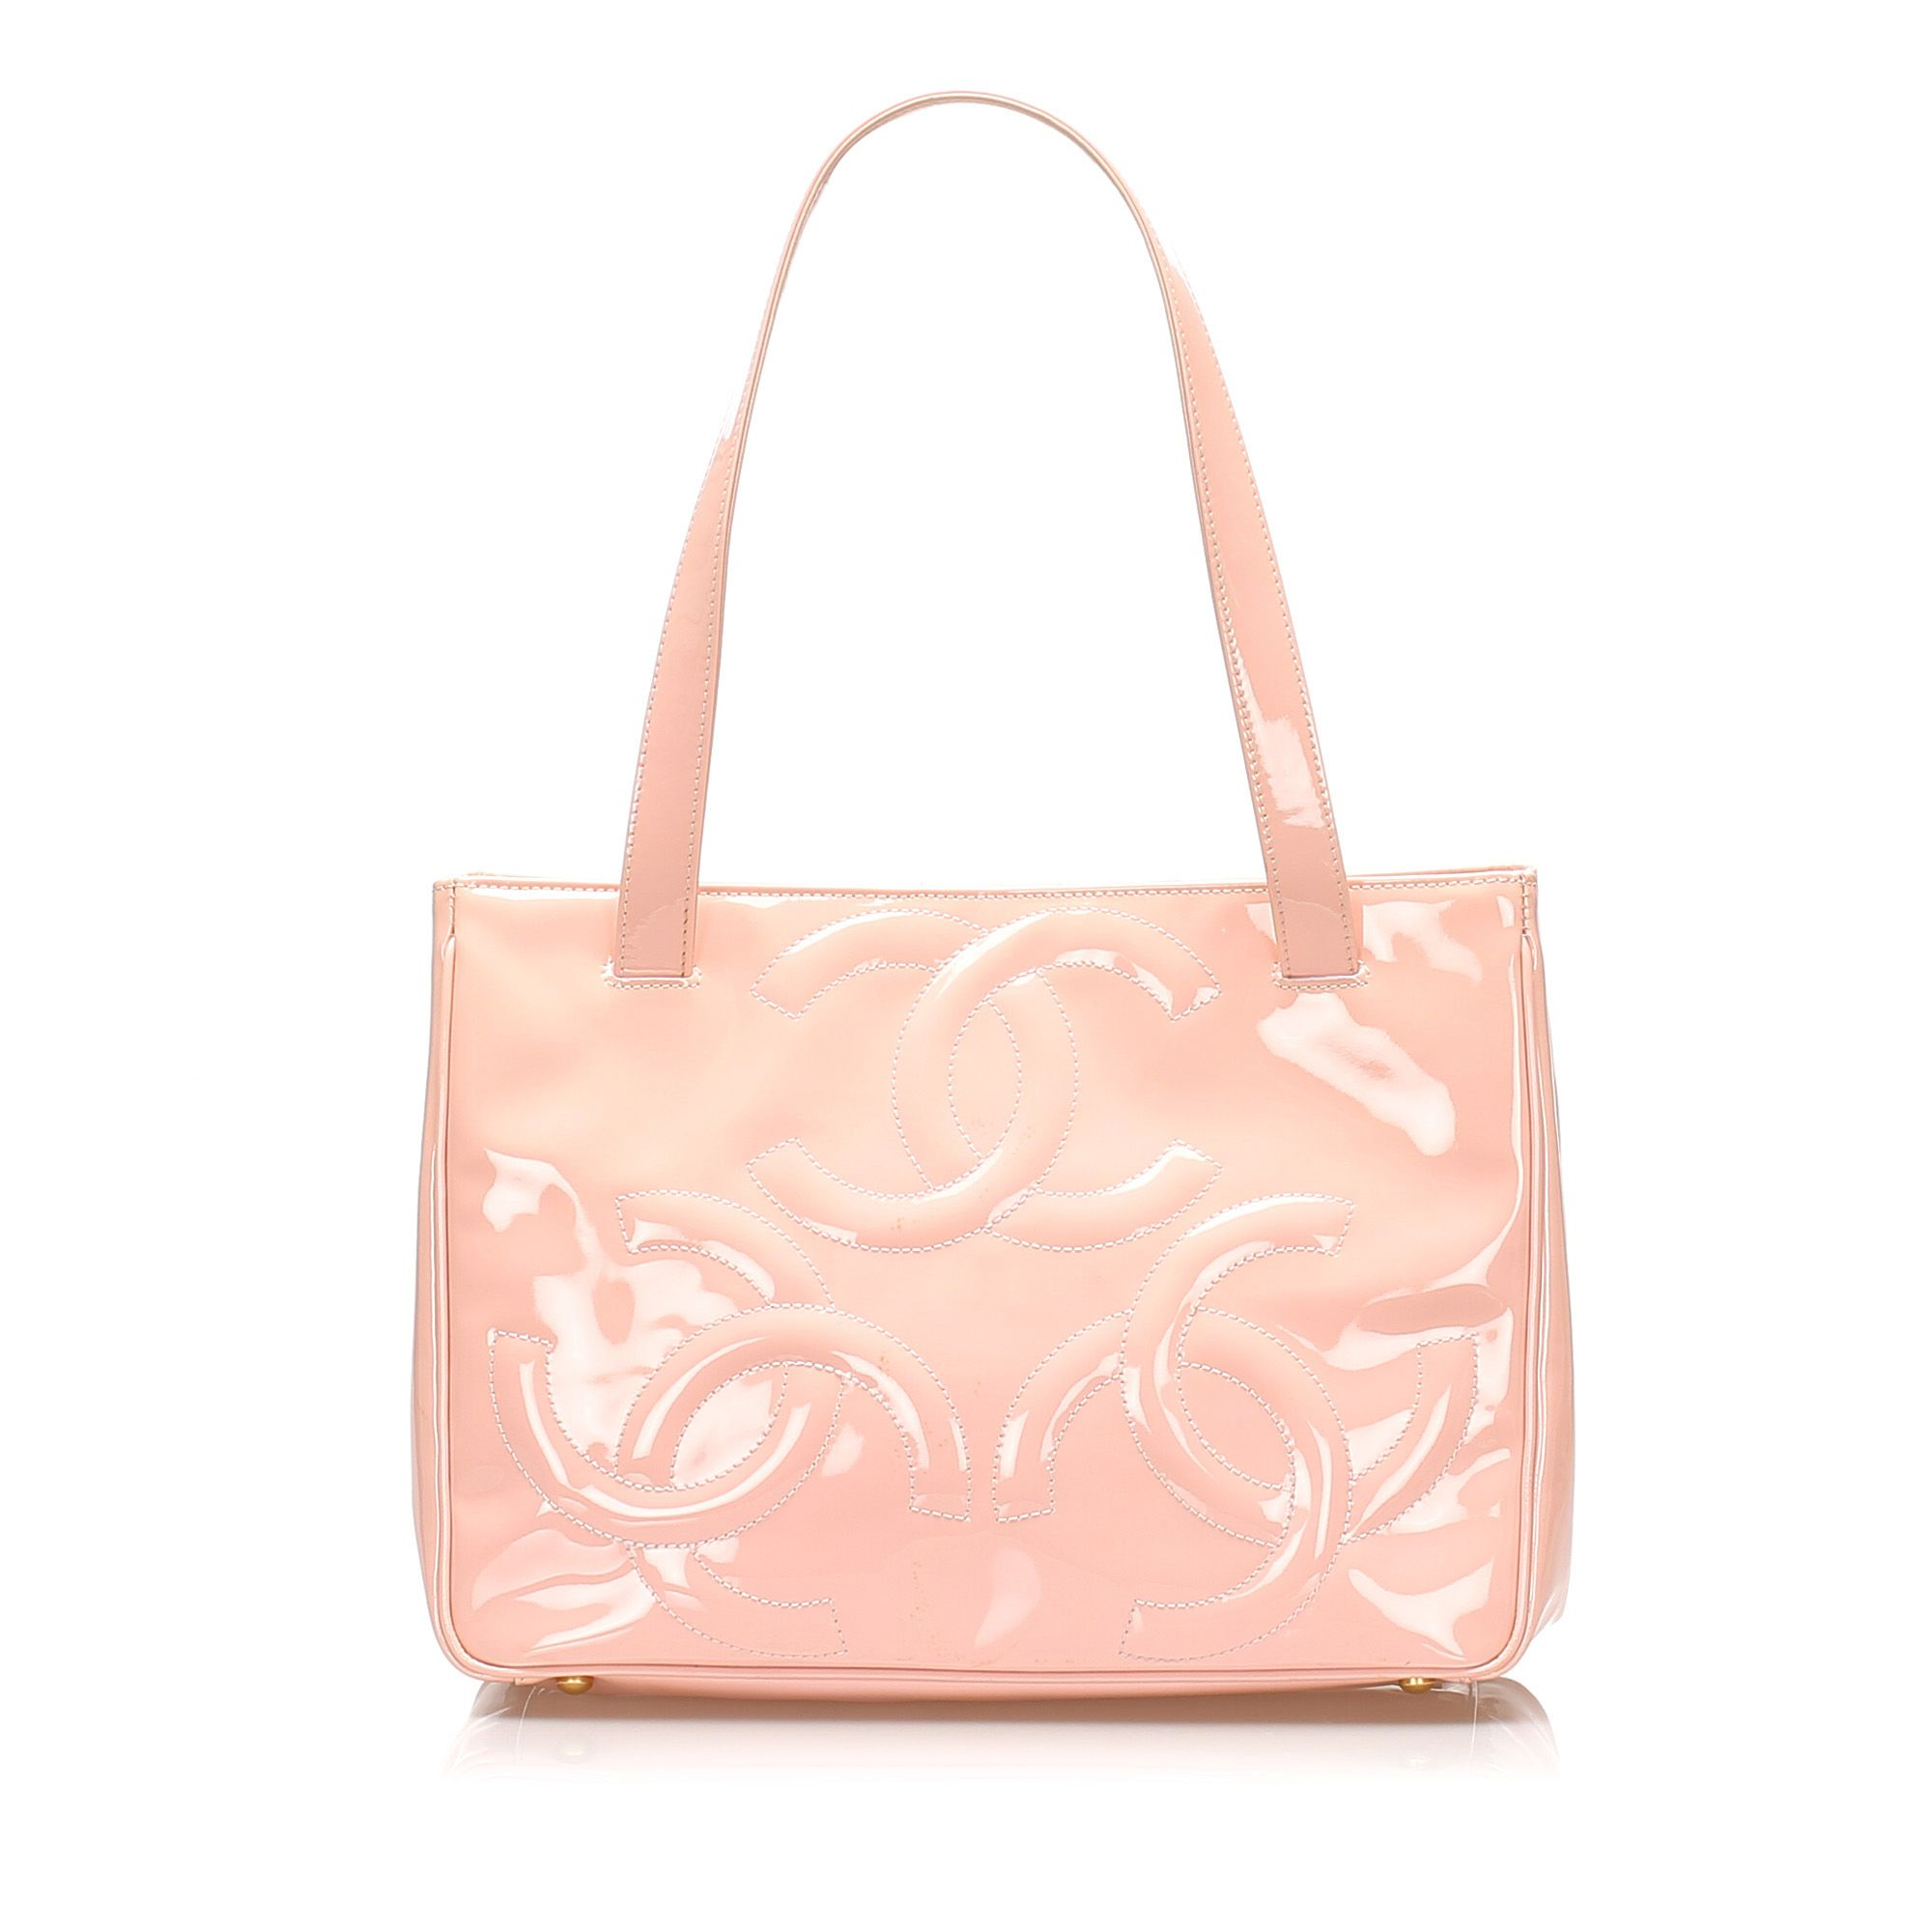 Vintage Chanel Triple Coco Patent Leather Tote Bag Pink